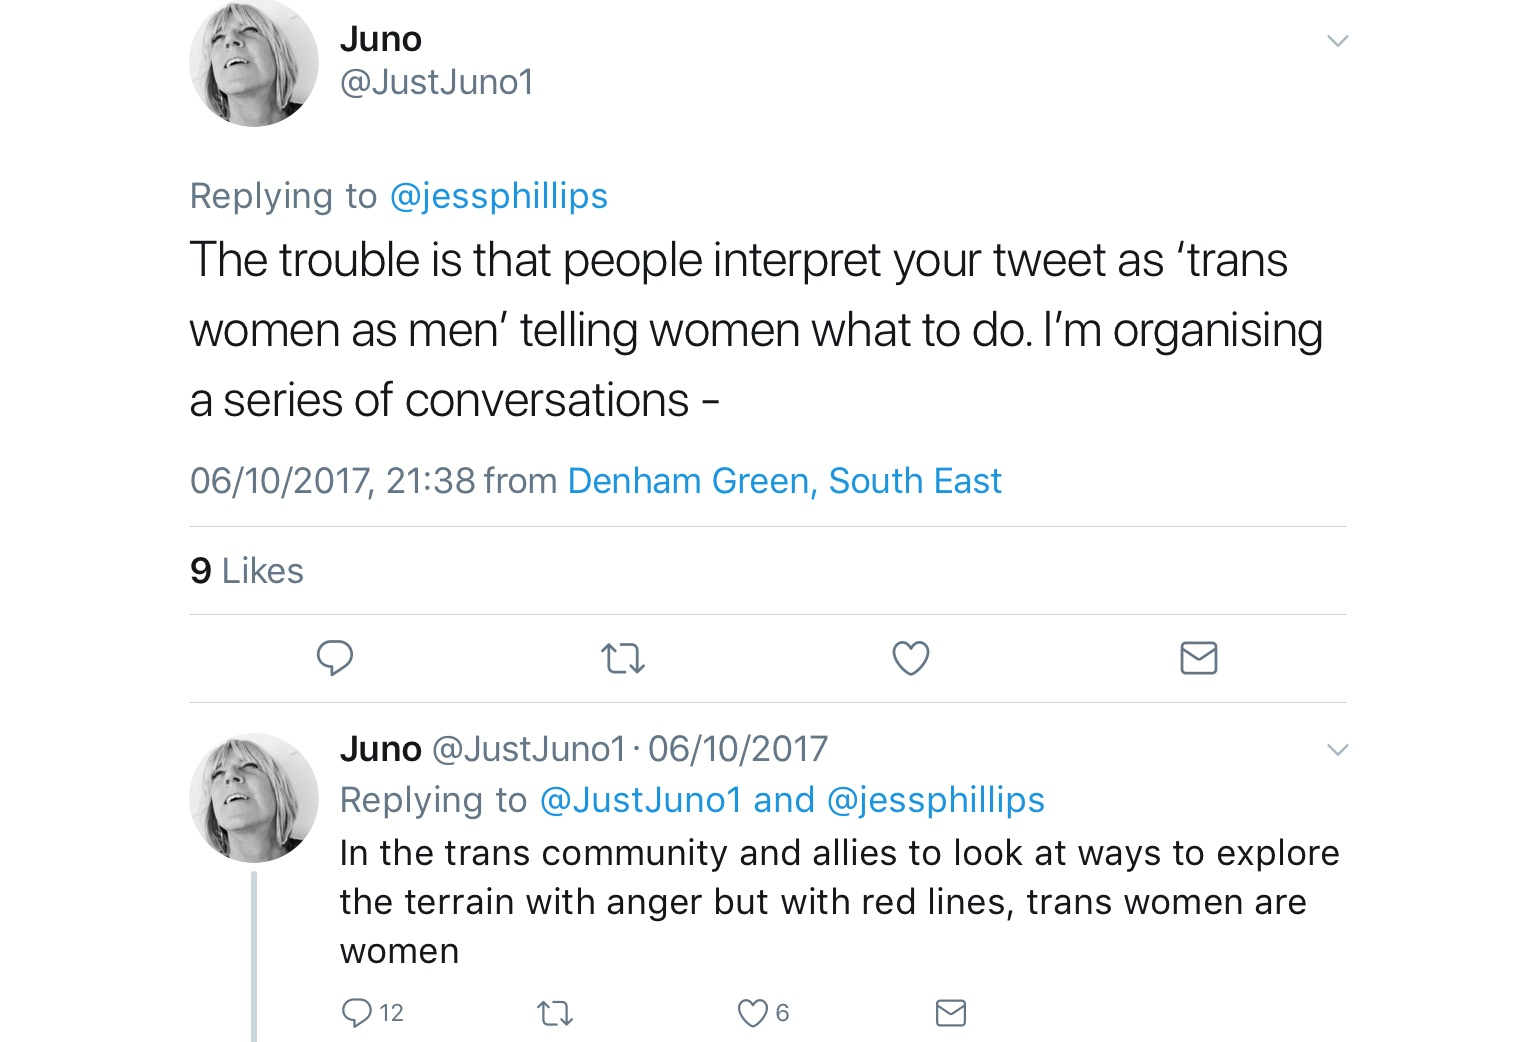 Transsexual sex positions discuss impossible